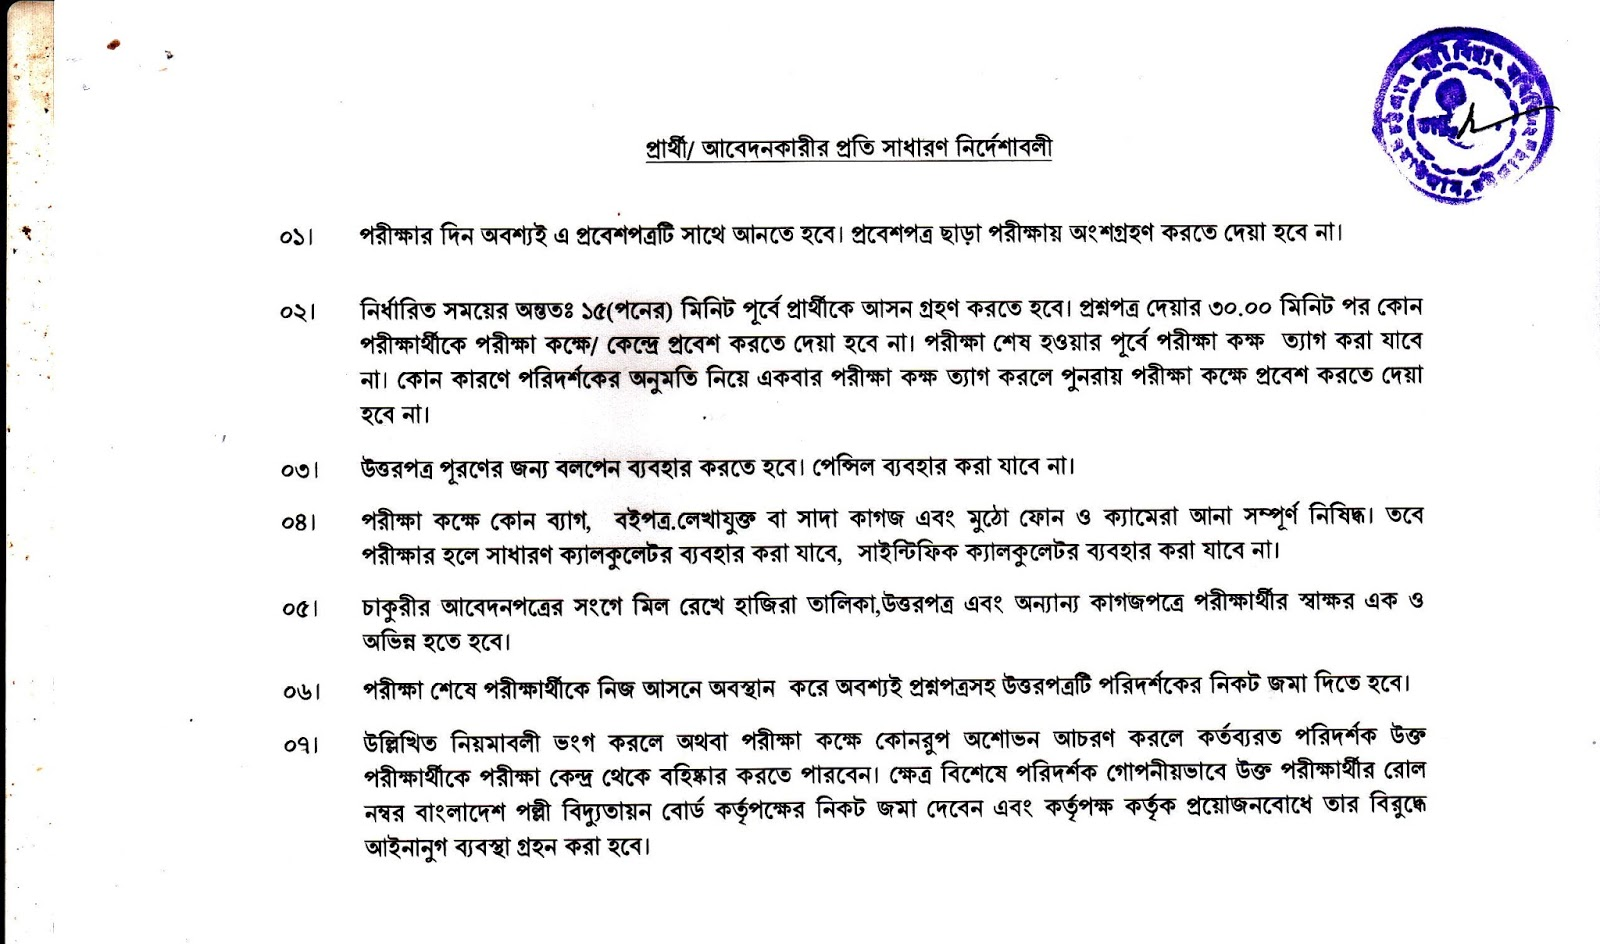 Chittagong Palli Bidyut Samity-2 Job Application Form